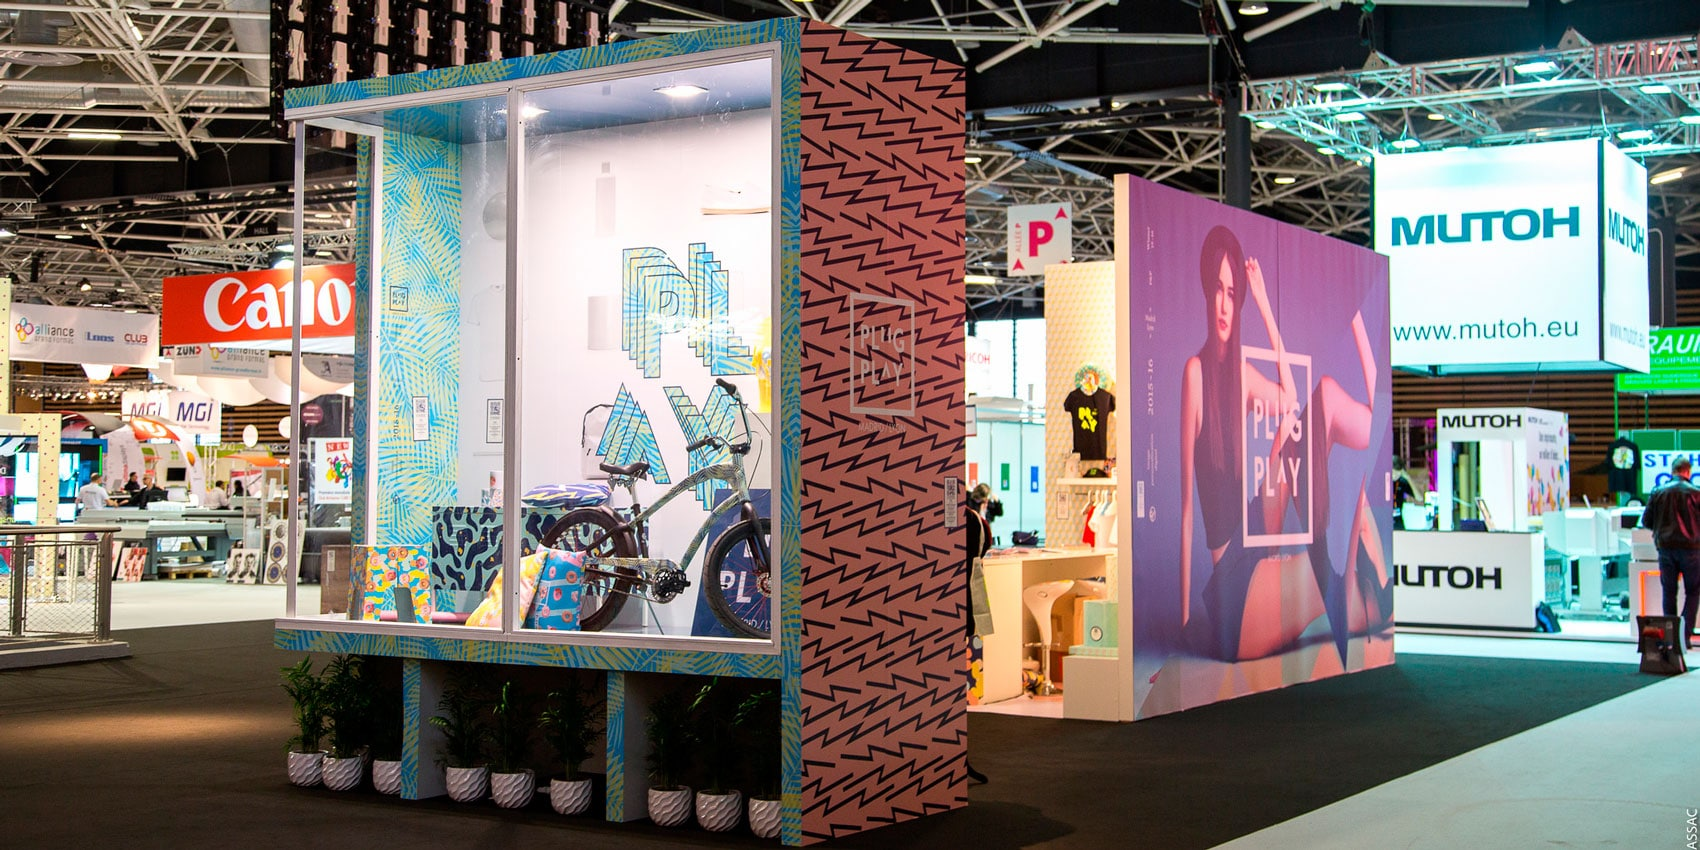 C print le salon qui fait forte impression ic lemag - Salon a paris en ce moment ...